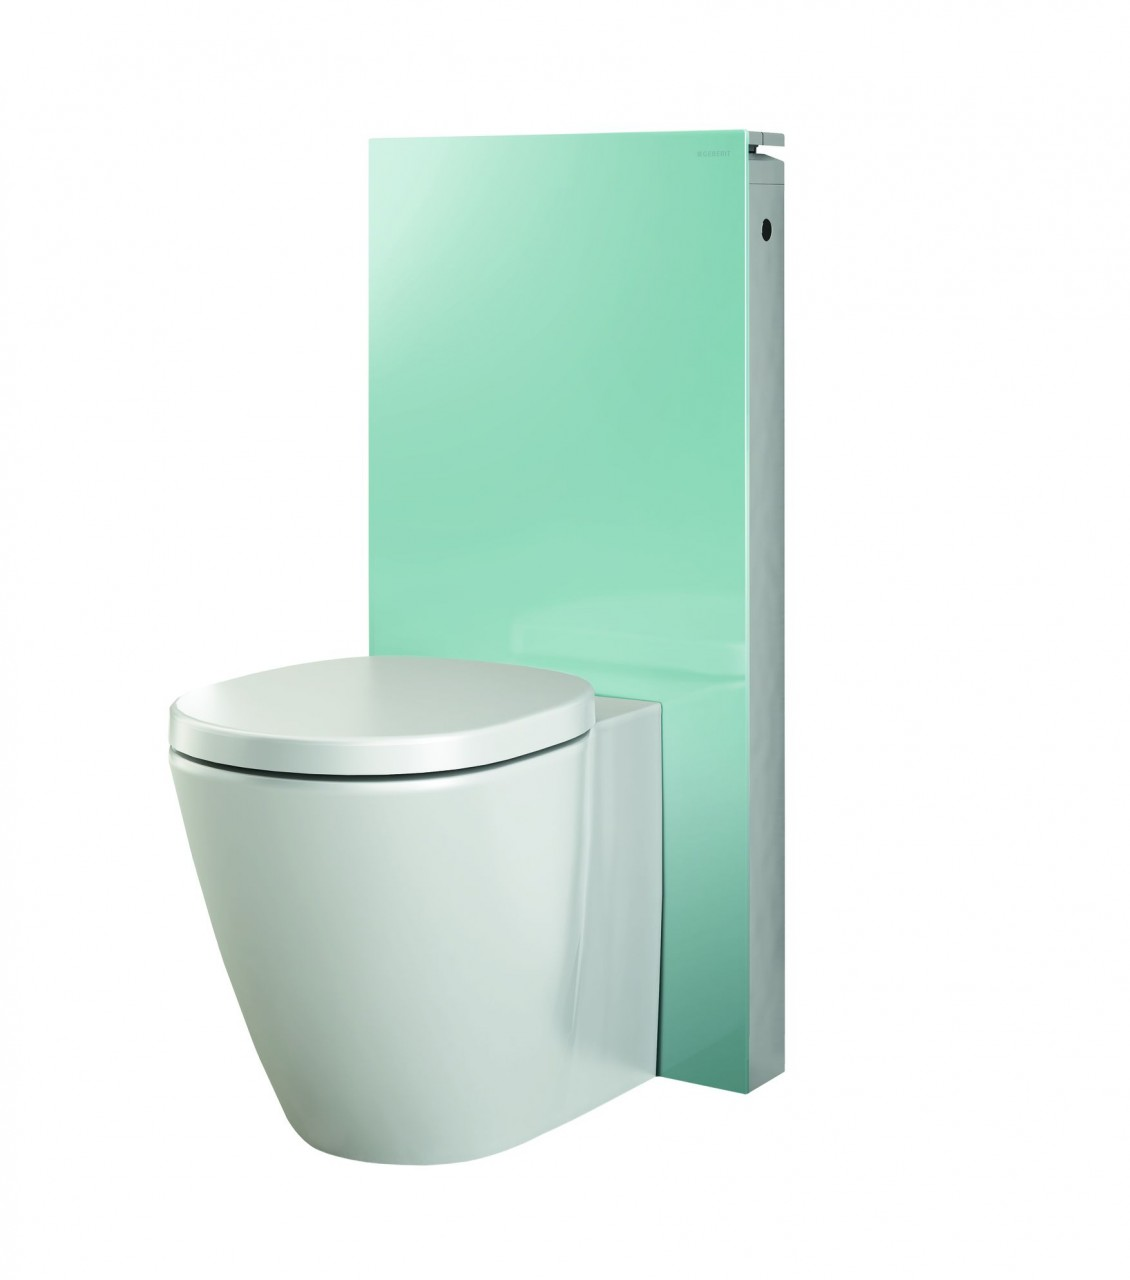 Geberit monolith 101 for floor mounted wc mint glass ap for Geberit products